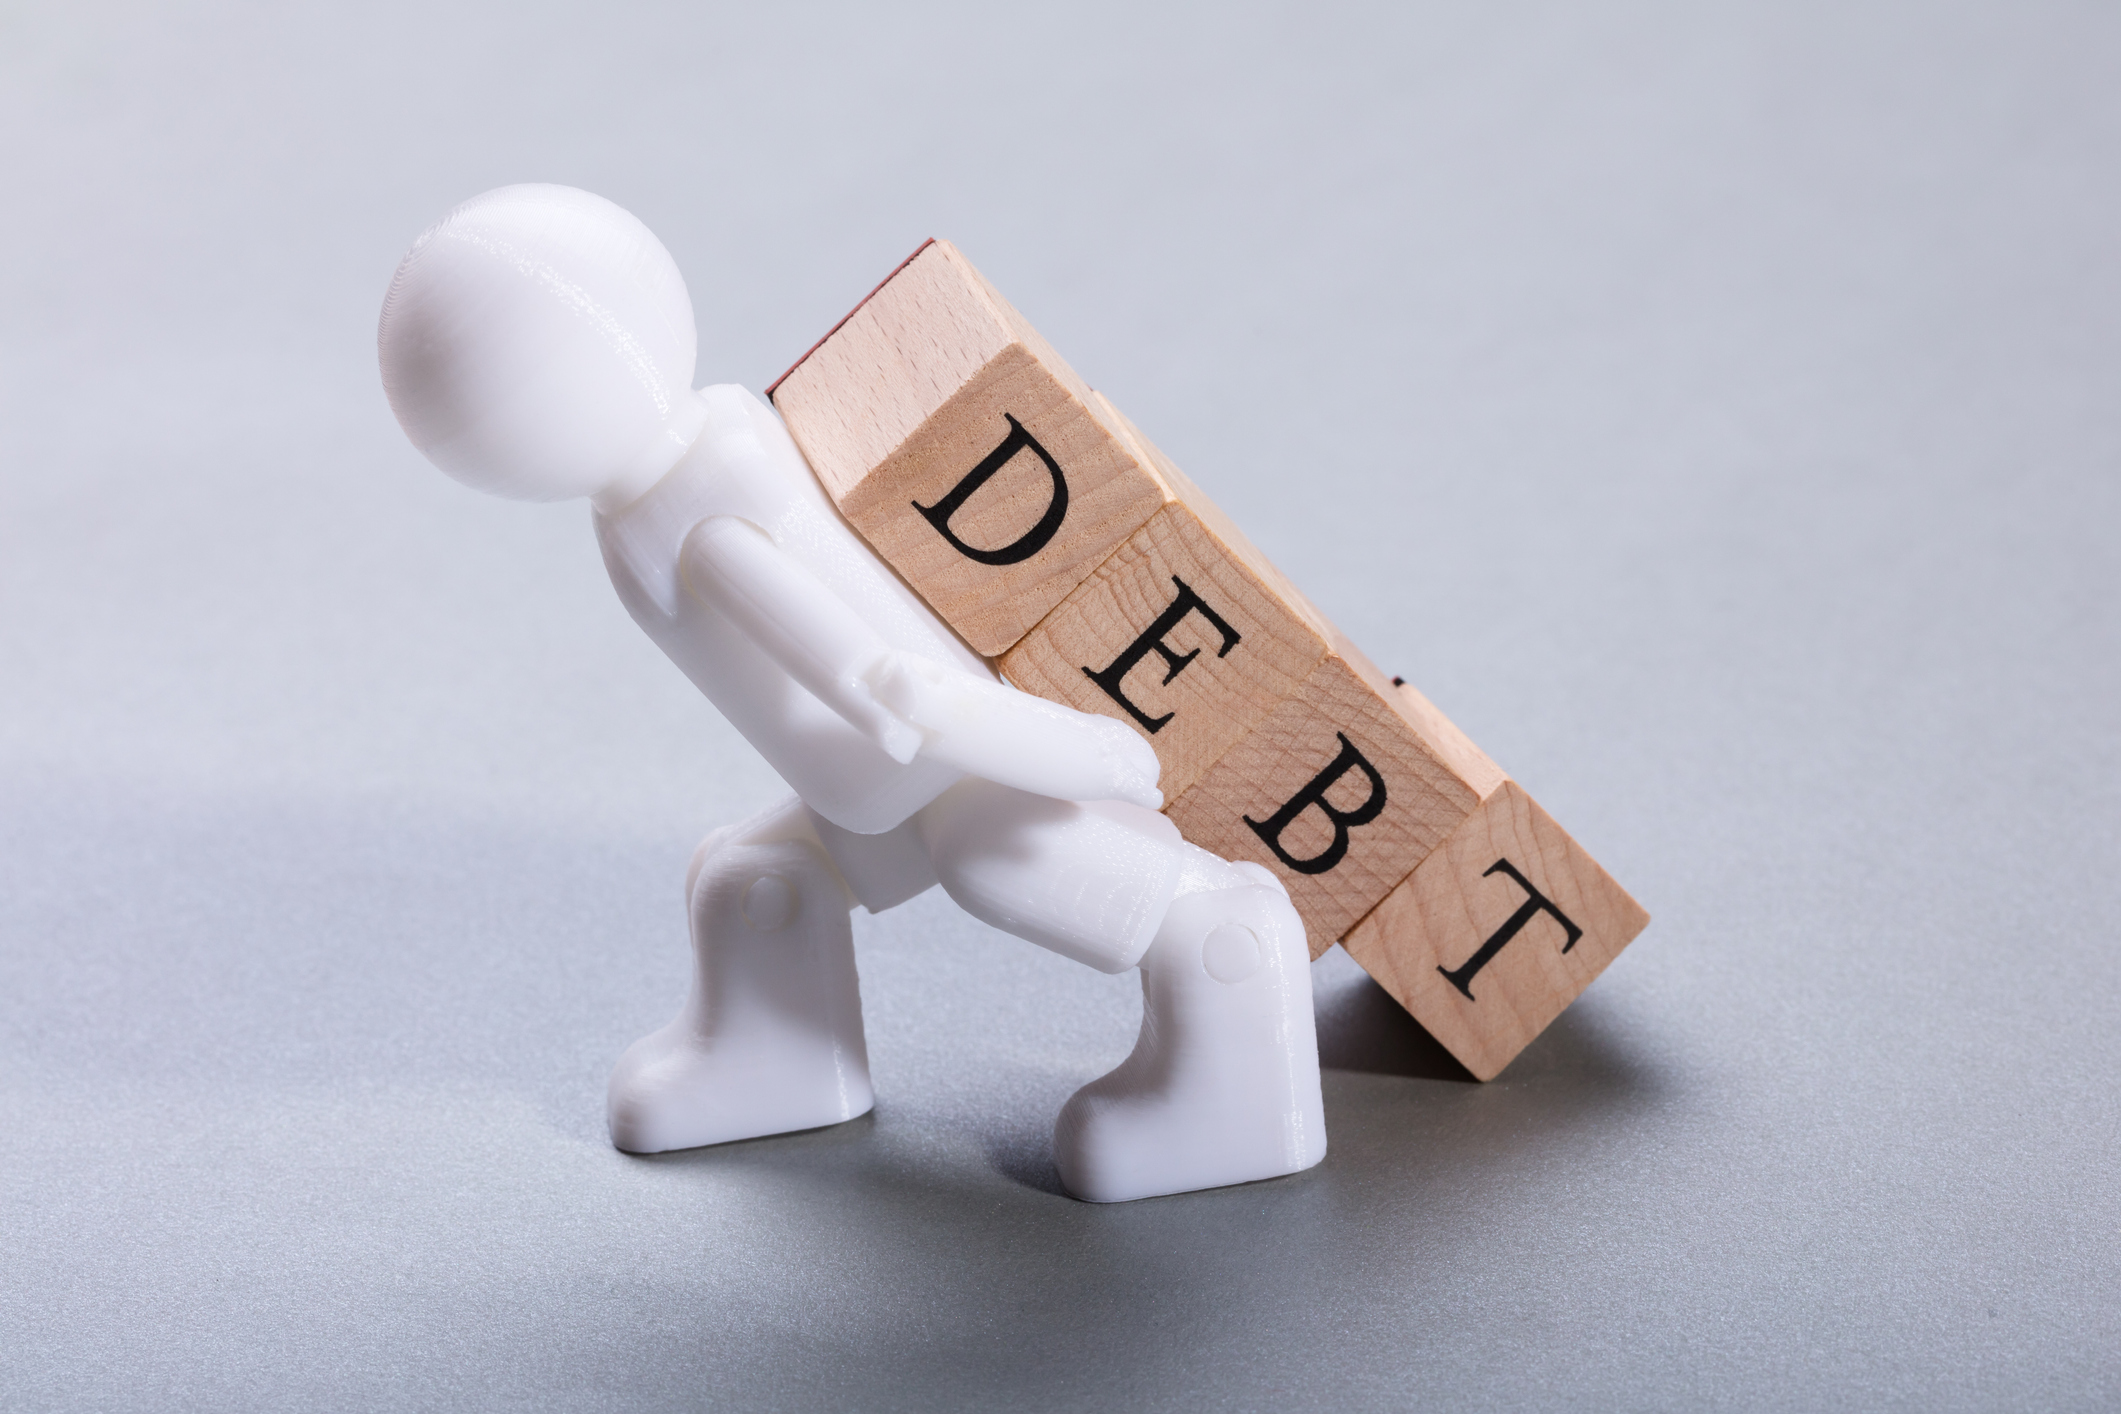 INSOLVENCY & BAILOUT @ iStock